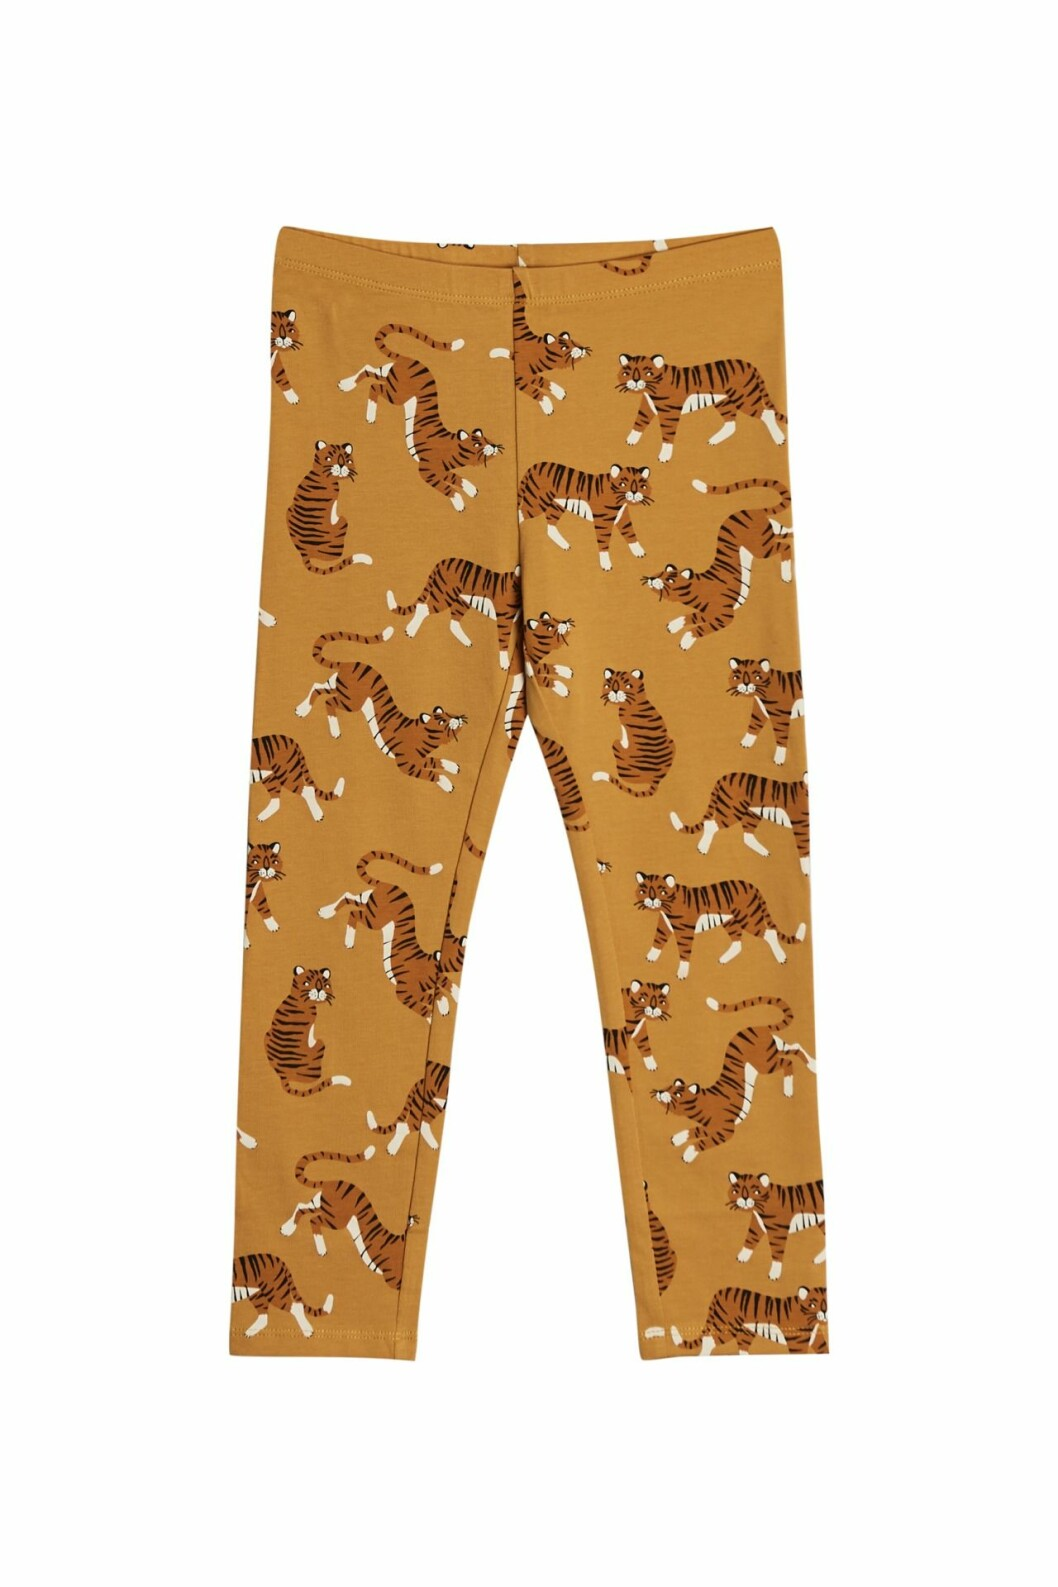 Gina tricot mini barnkollektion leggings gula